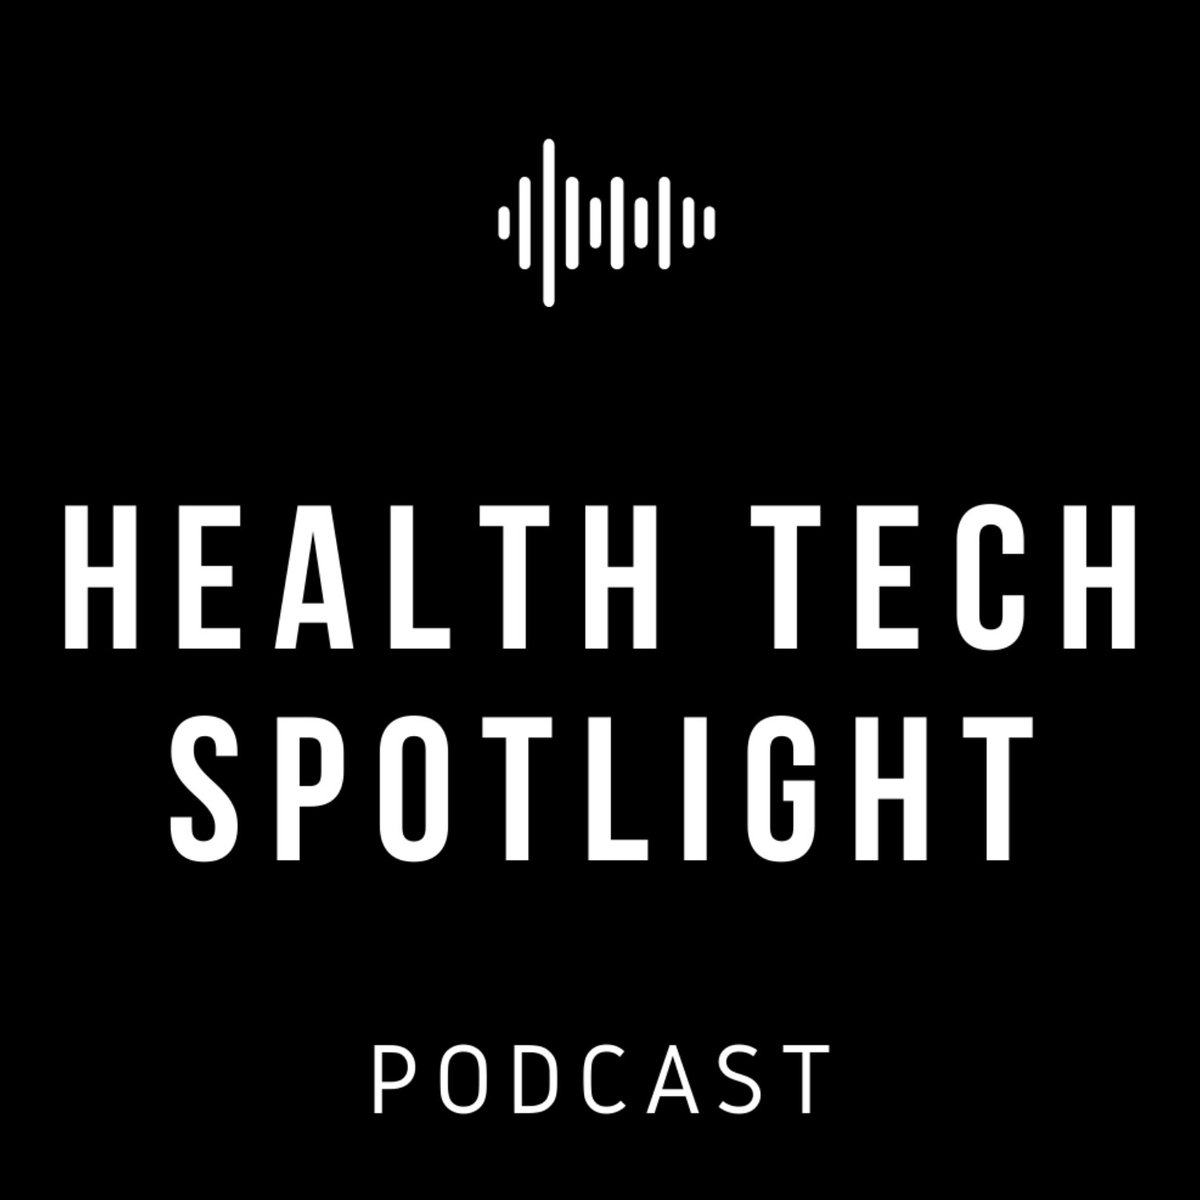 Check out the newest episode of the Health Tech Spotlight podcast for an exclusive interview with Owen McCarthy, President and Co-Founder of MedRhythms! #MusicItsScience #healthtech #digitaltherapeutics   https://t.co/6fgvefUQ4C https://t.co/AEM21JOzkN